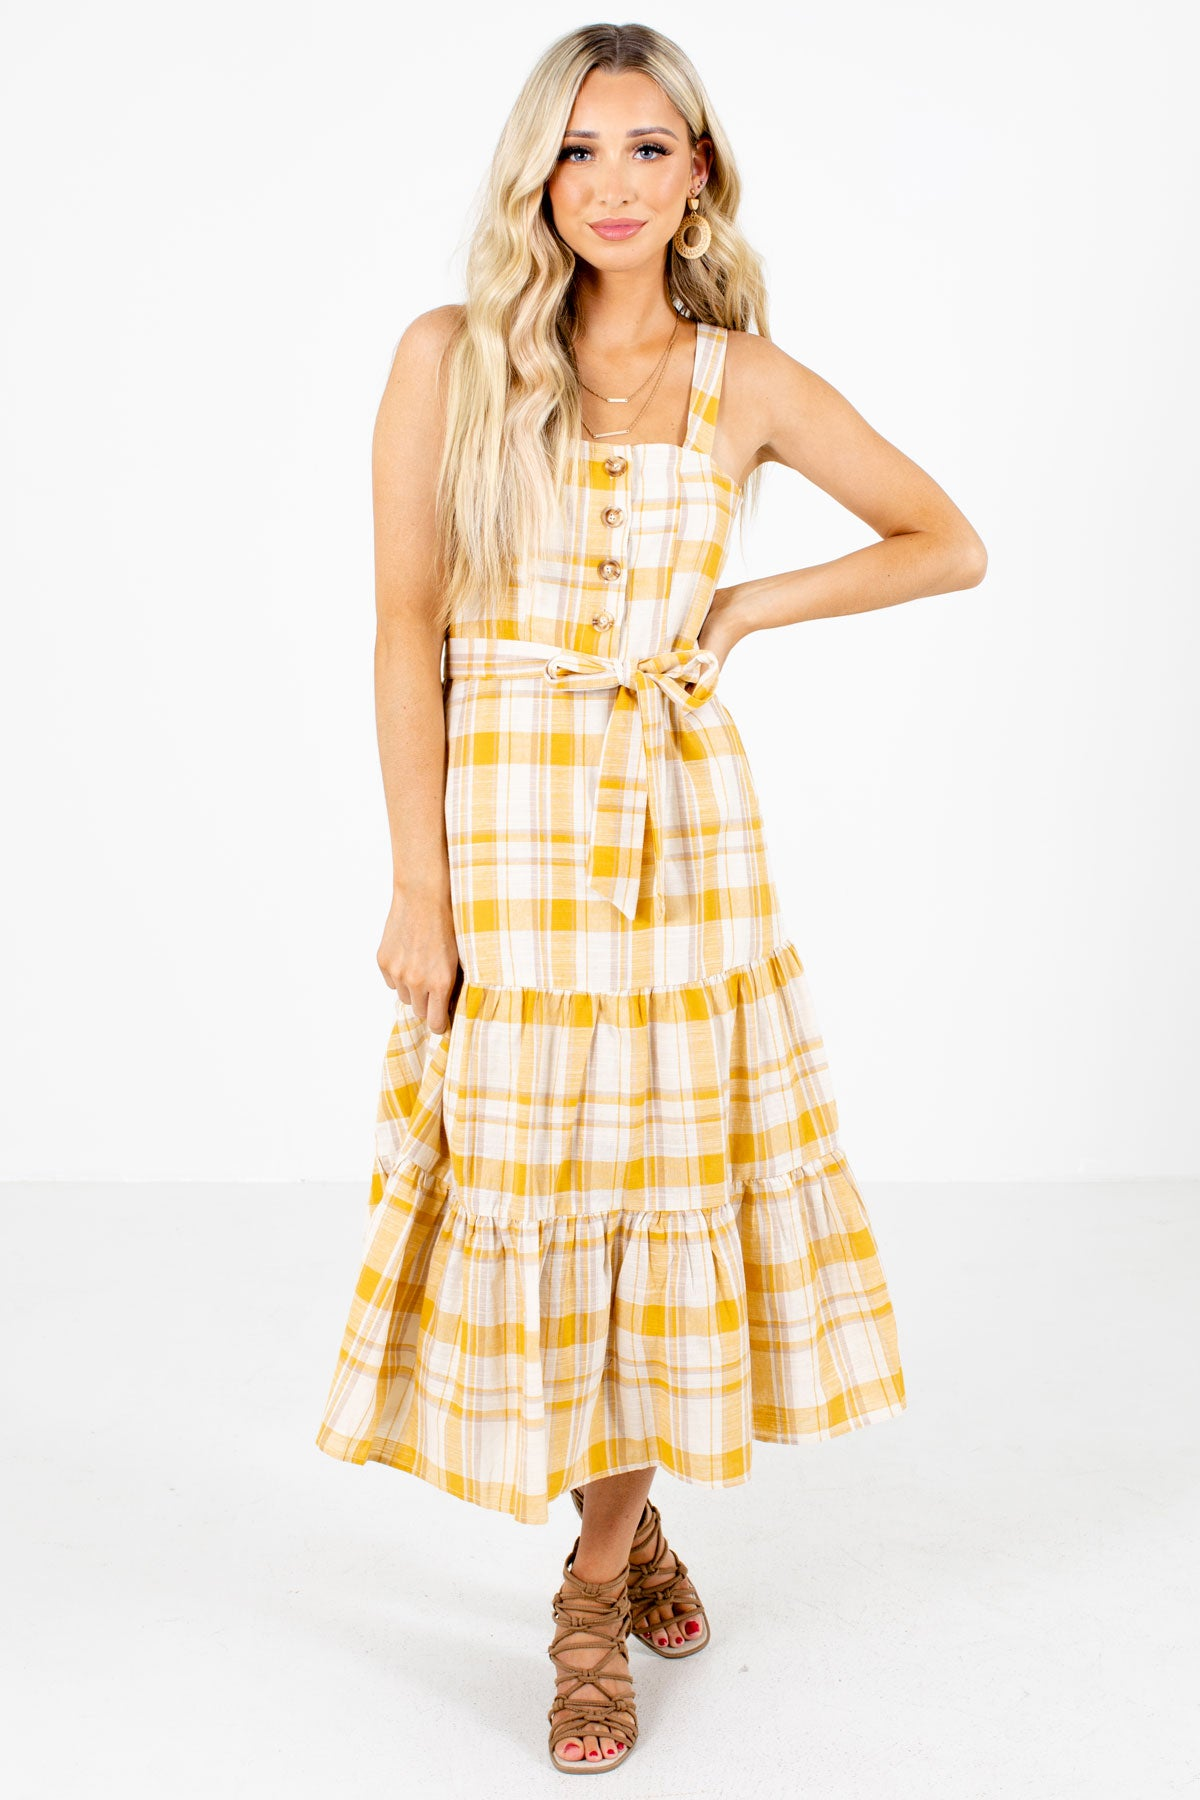 Yellow Plaid Patterned Boutique Midi Dresses for Women